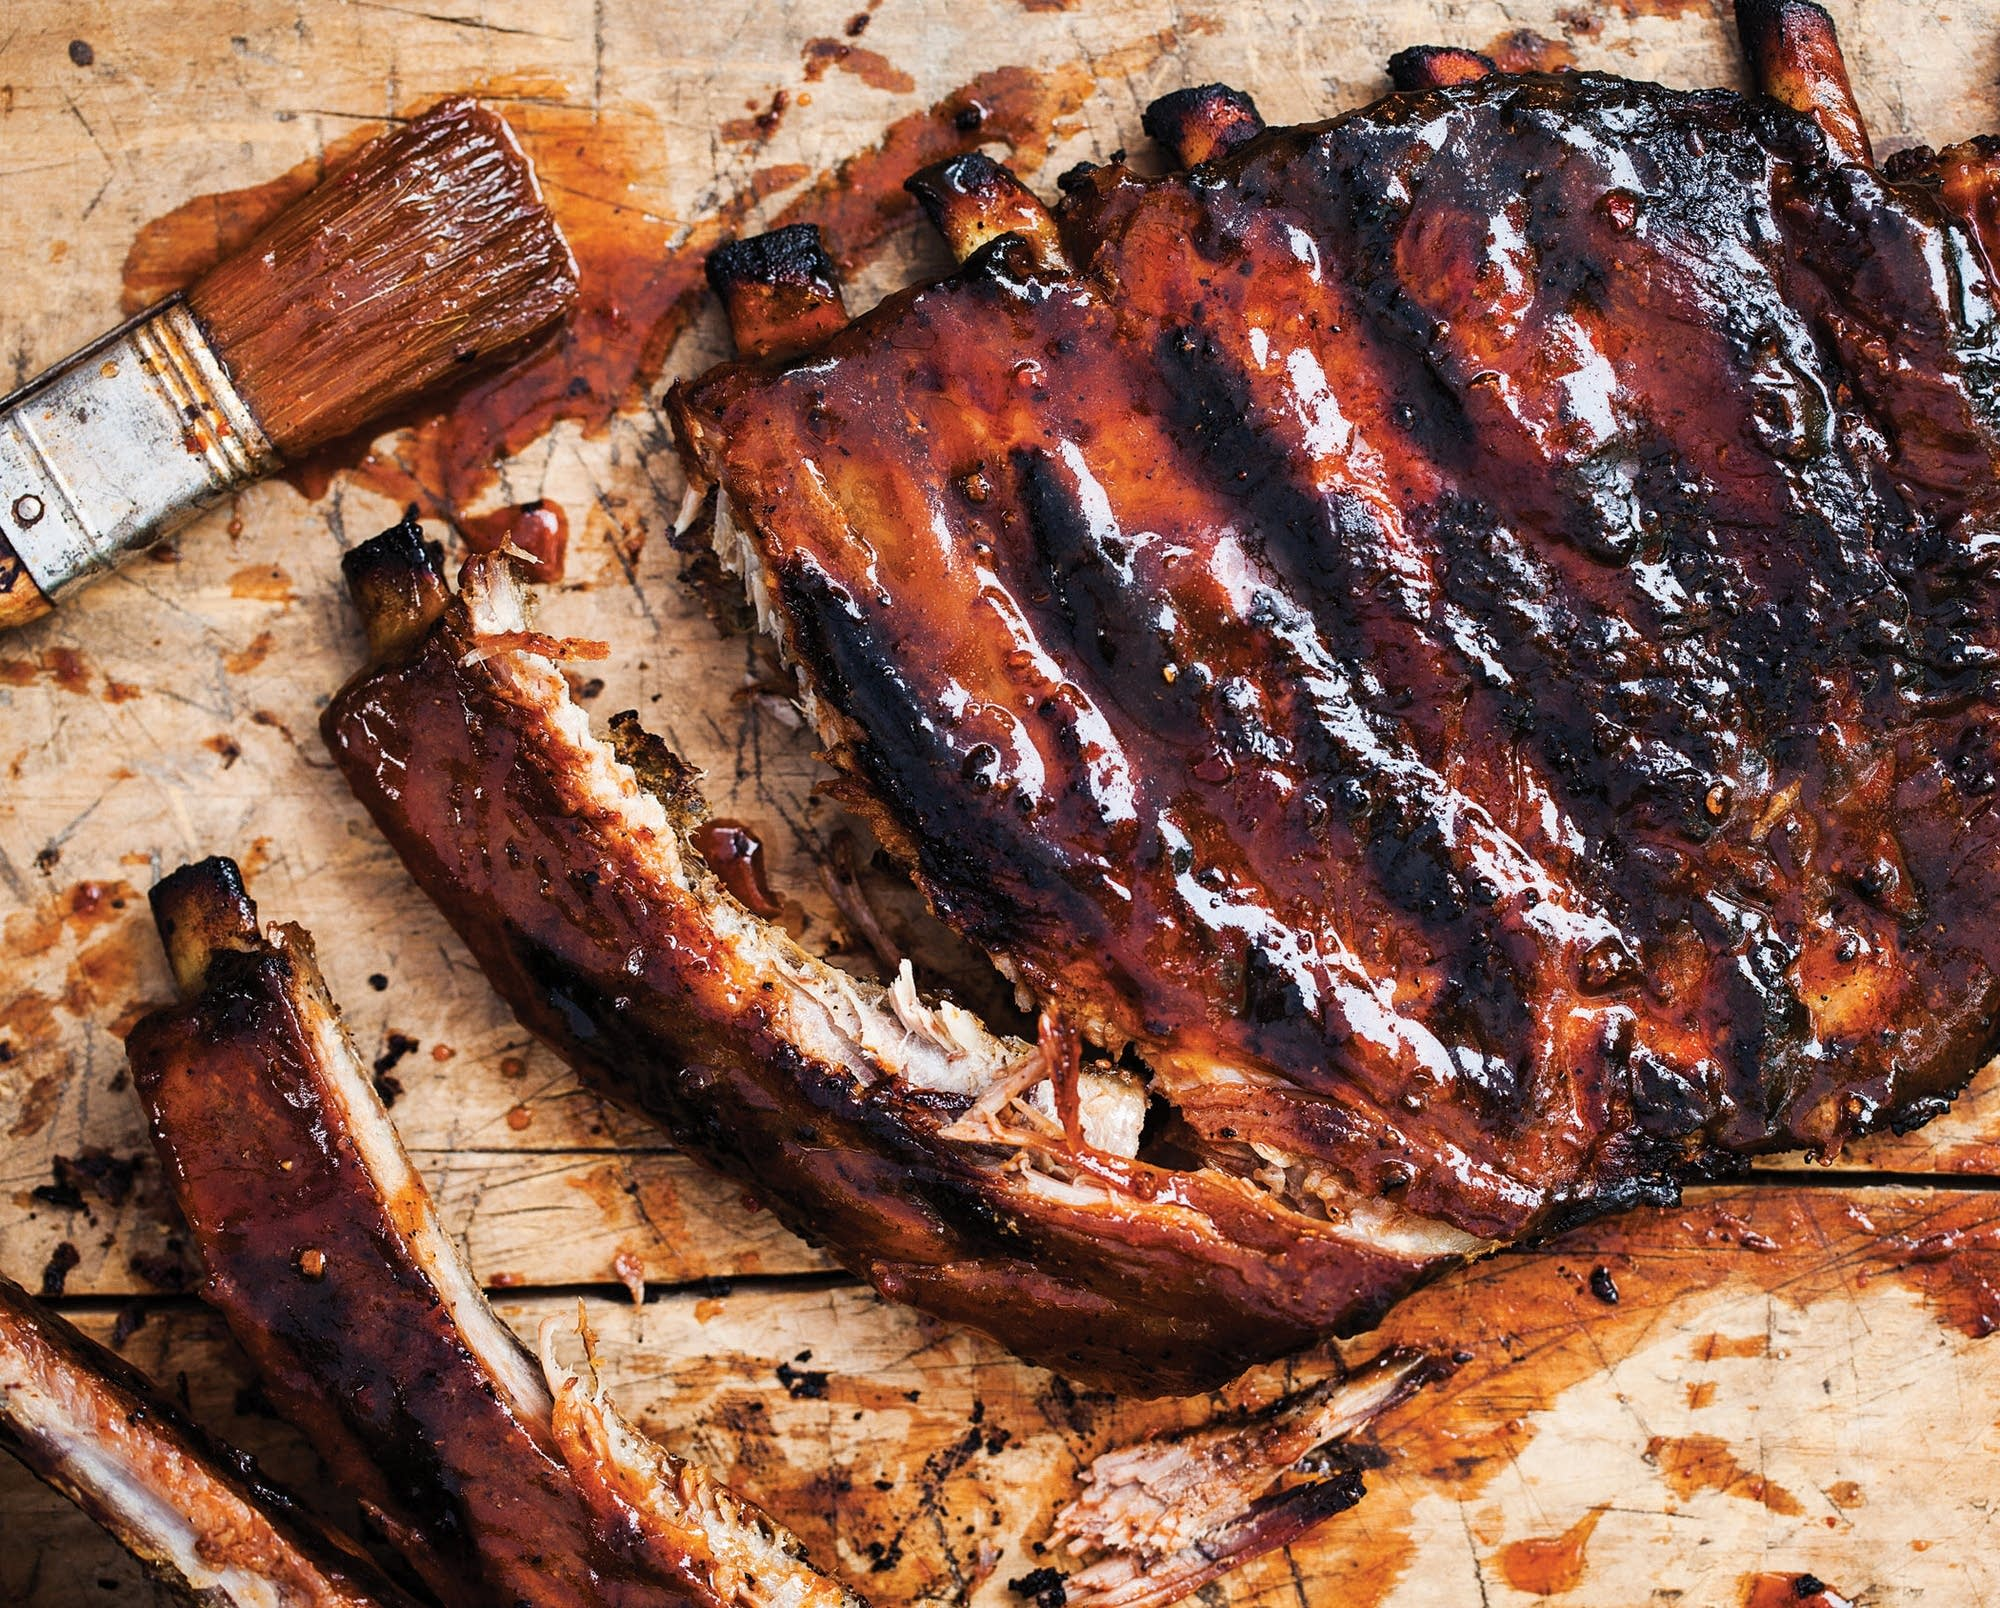 Best Ever Barbecued Ribs The Splendid Table,Easy Chinese Eggplant Recipes